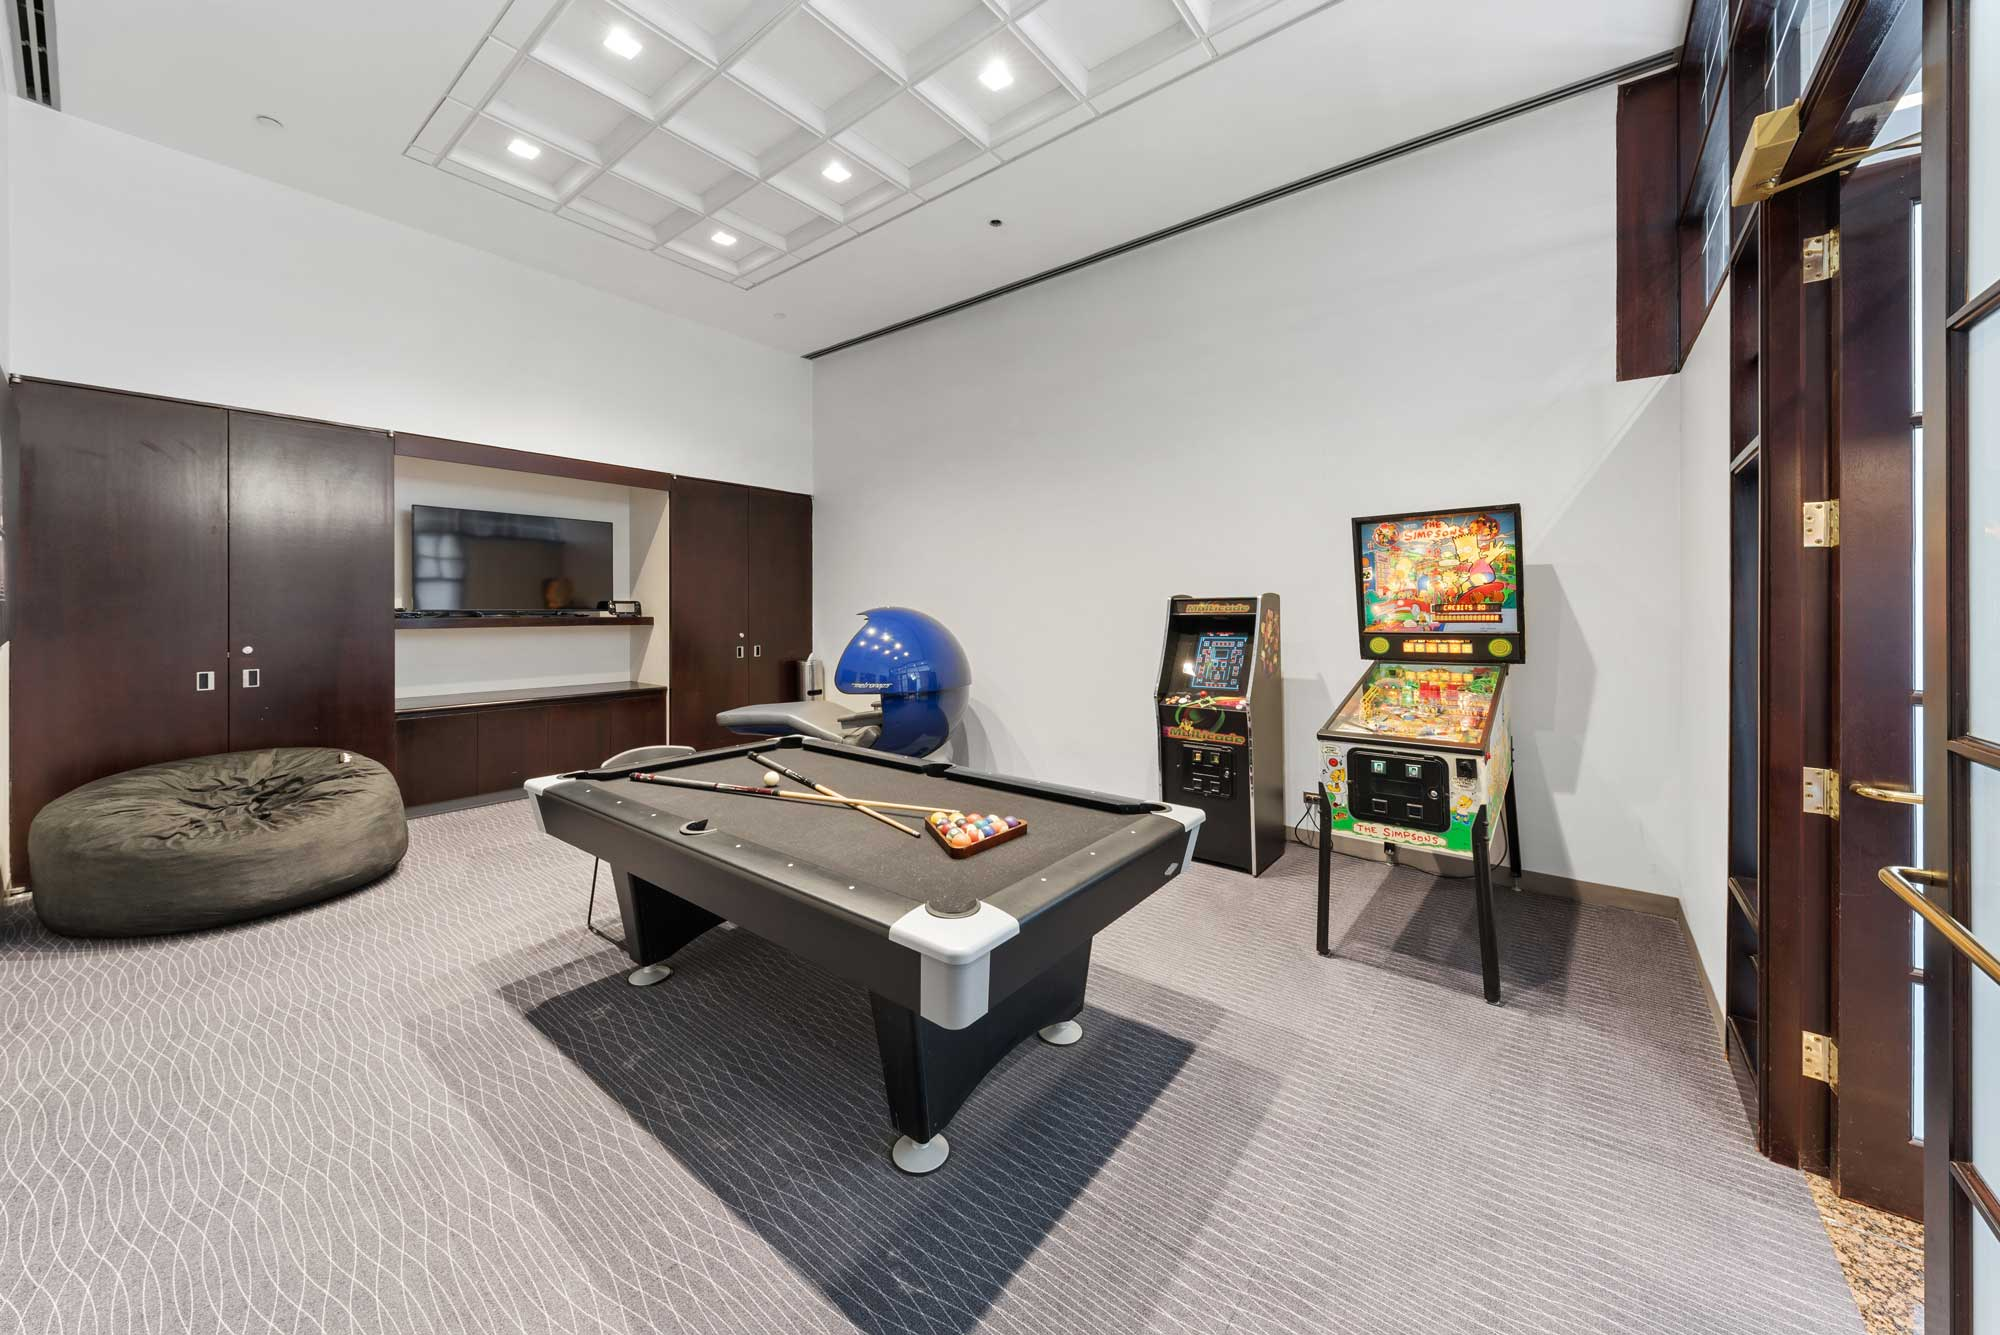 Pool Table & Game Room at Office Base in Schaumburg, IL